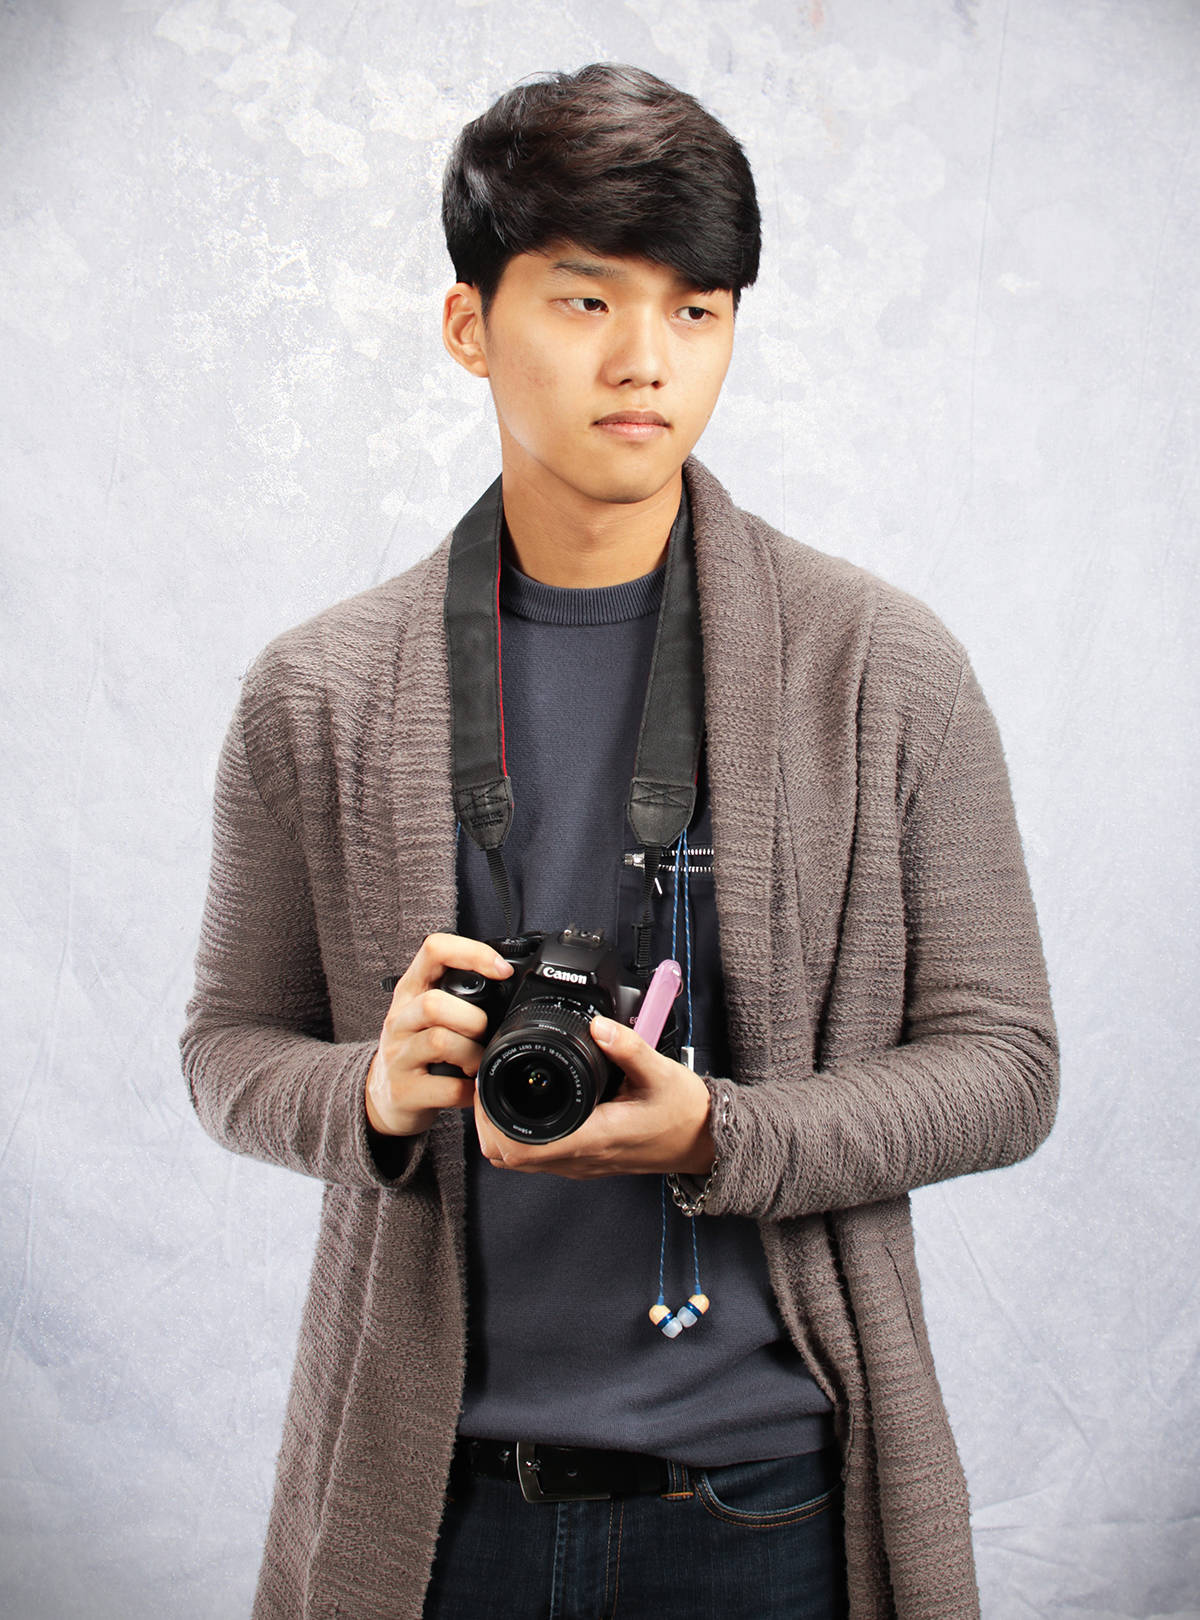 Kevin Kim, a grade 12 Walnut Grove Secondary student, is at the winter Olympics in Pyeongchange working for Proctor & Gamble to interview and film Korean athletes. Submitted photo